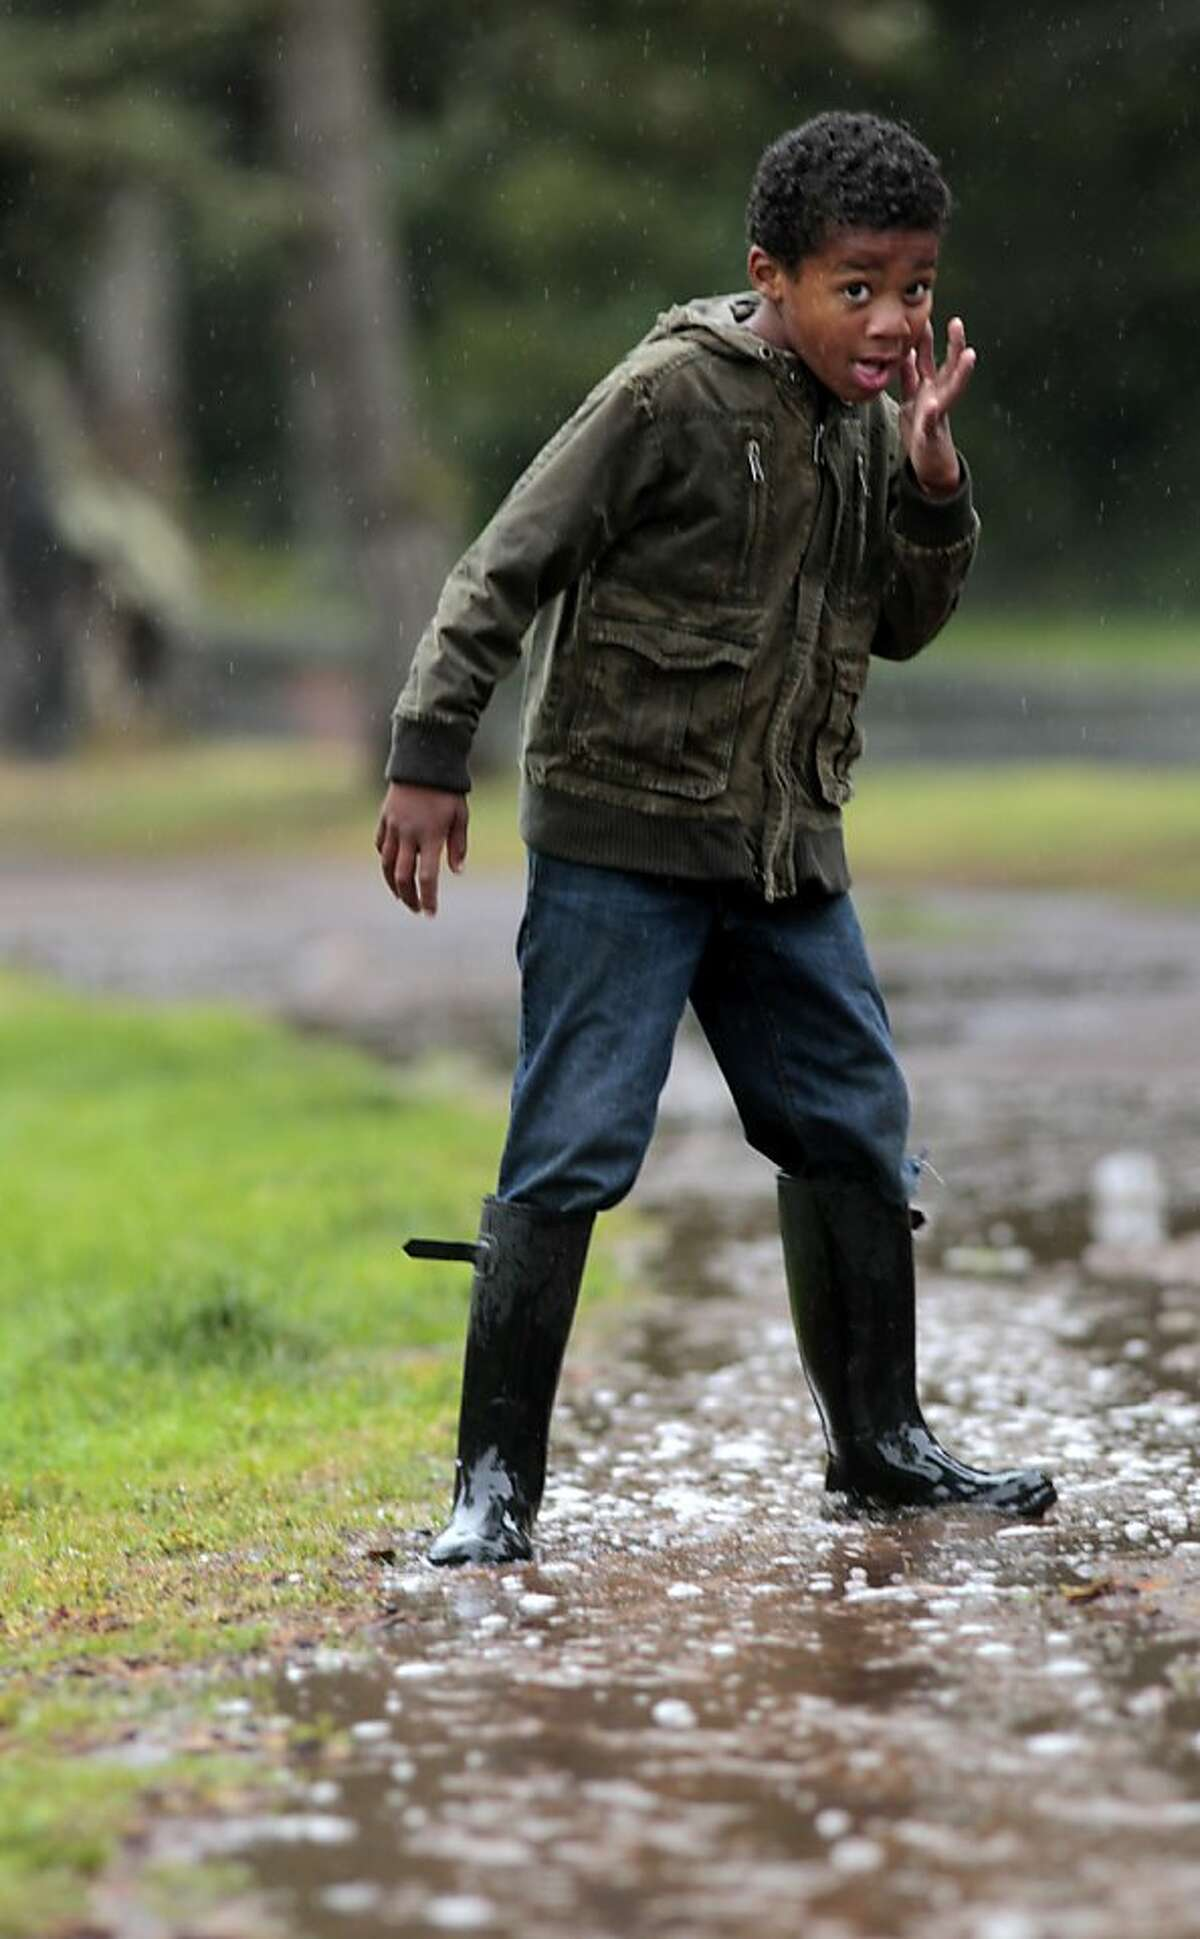 Kobi Davis , 8 years old, stomps in the rain puddles in Golden Gate Park,Tuesday June 28, 2011, in San Francisco, Calif.